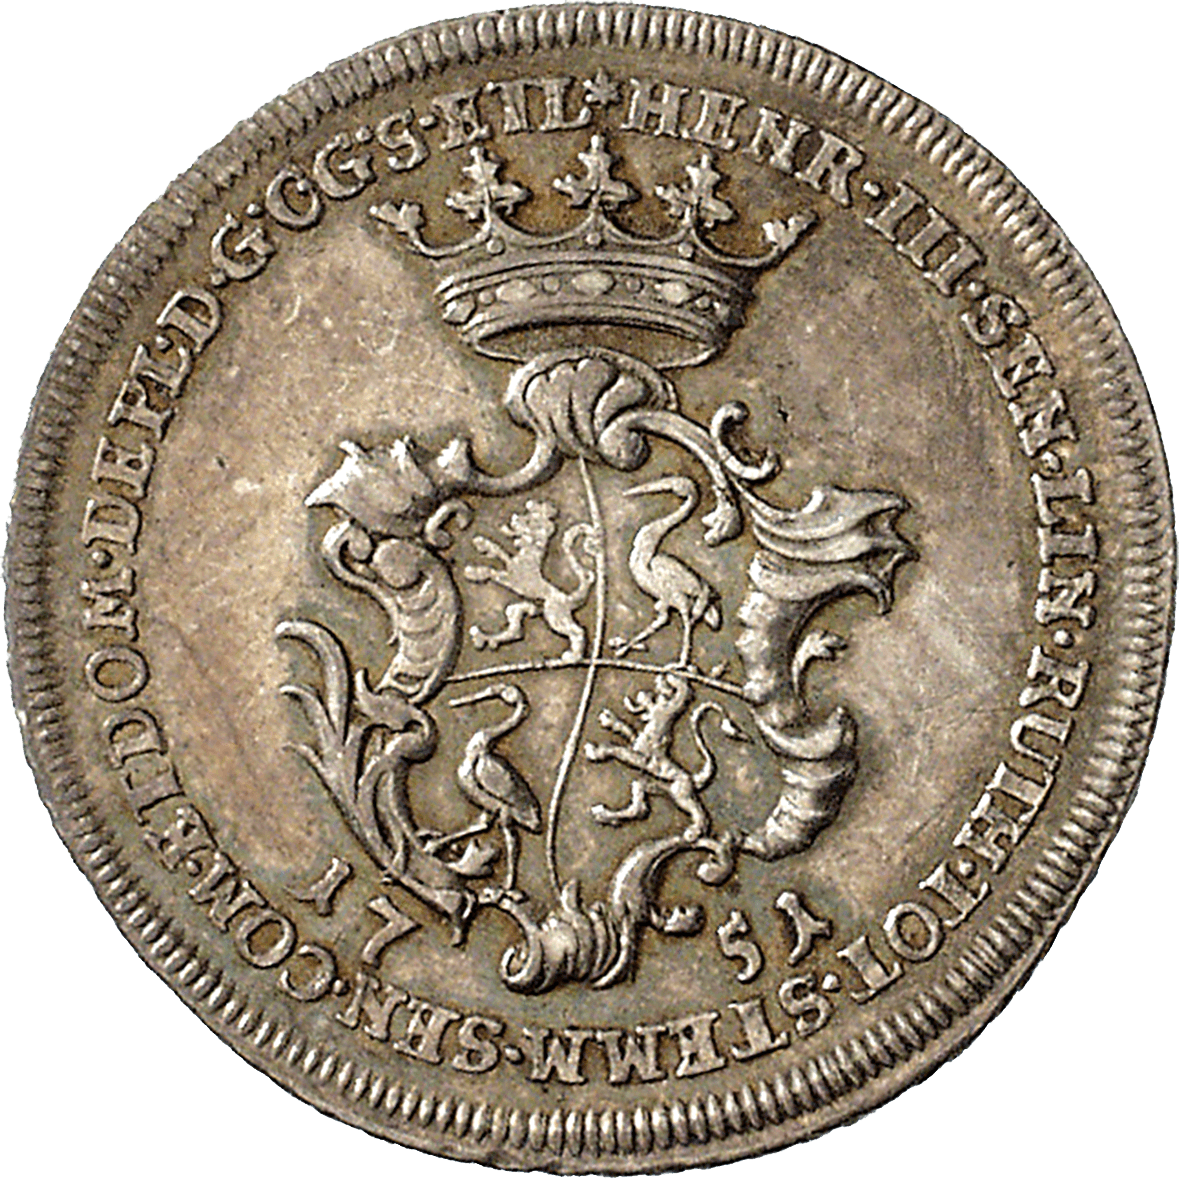 Holy Roman Empire, Reuss-Untergreitz, Henry III, 1/4 Species-Taler 1751 (obverse)